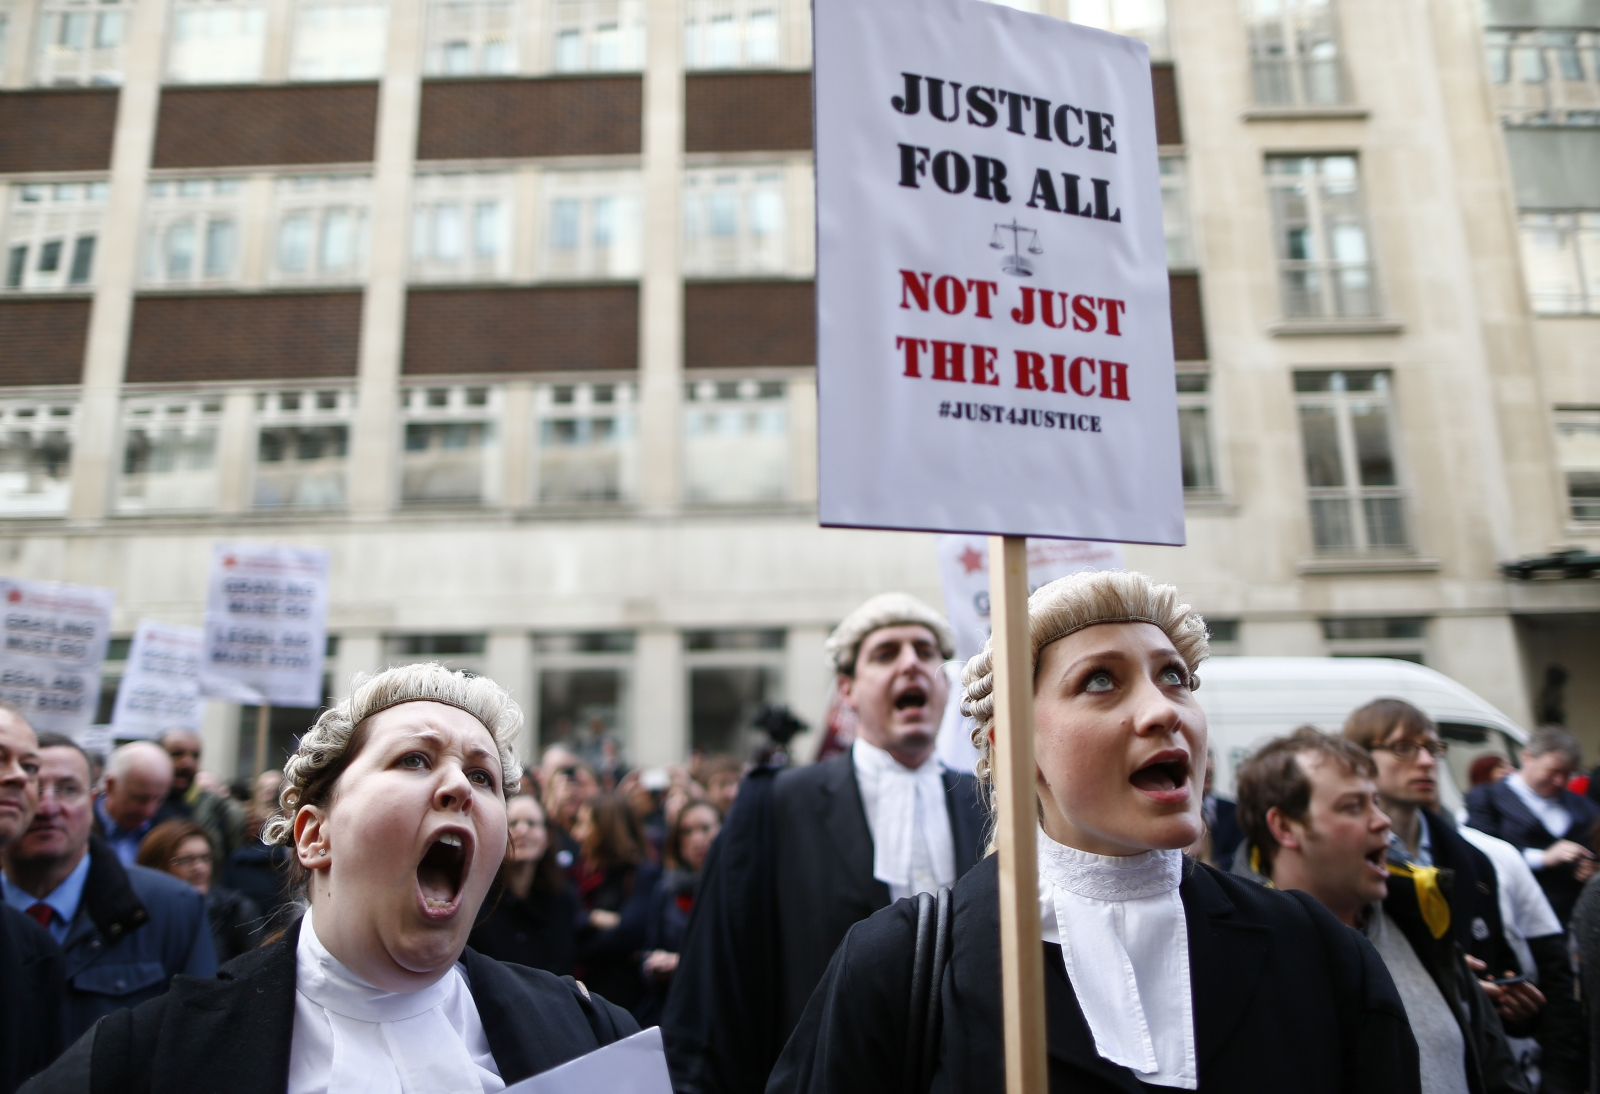 Barristers protest cuts to legal aid